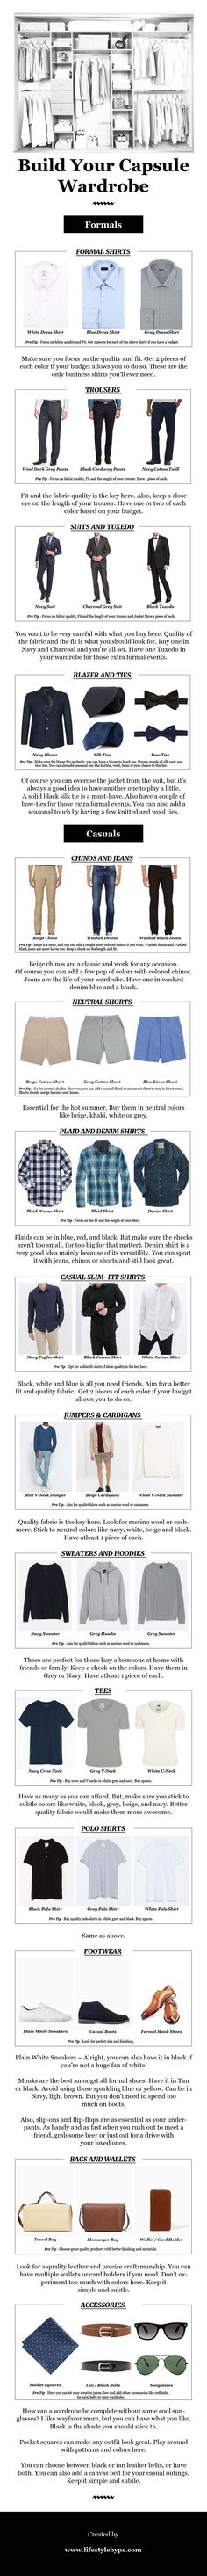 Capsule Wardrobe For Men eBook Build Your Capsule Wardrobe from the ground up Infographic Capsule Wardrobe Men, Mens Wardrobe Essentials, Men's Wardrobe, Wardrobe Basics, Mens Style Guide, Men Style Tips, Mens Fashion Blog, Fashion Advice, Men's Fashion